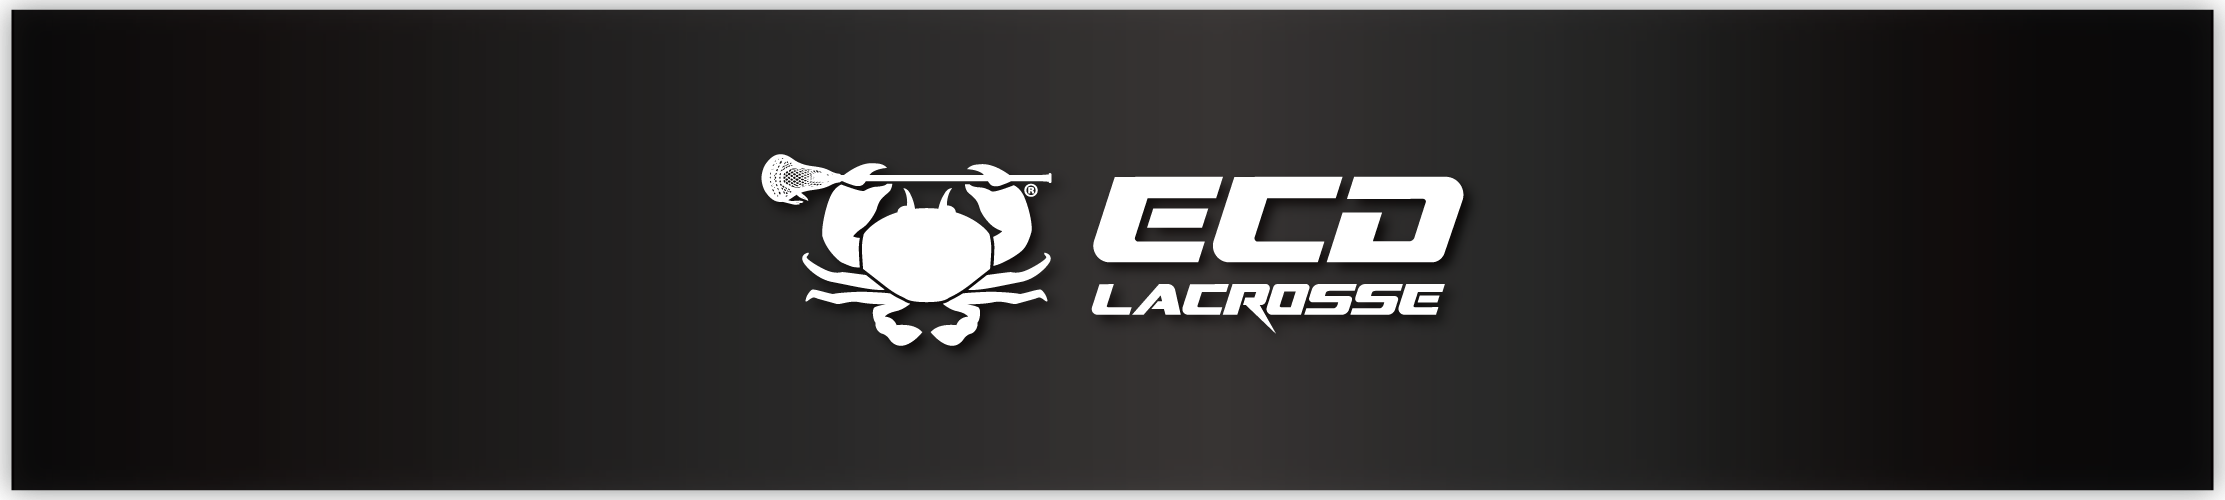 East Coast Dyes Lacrosse Heads